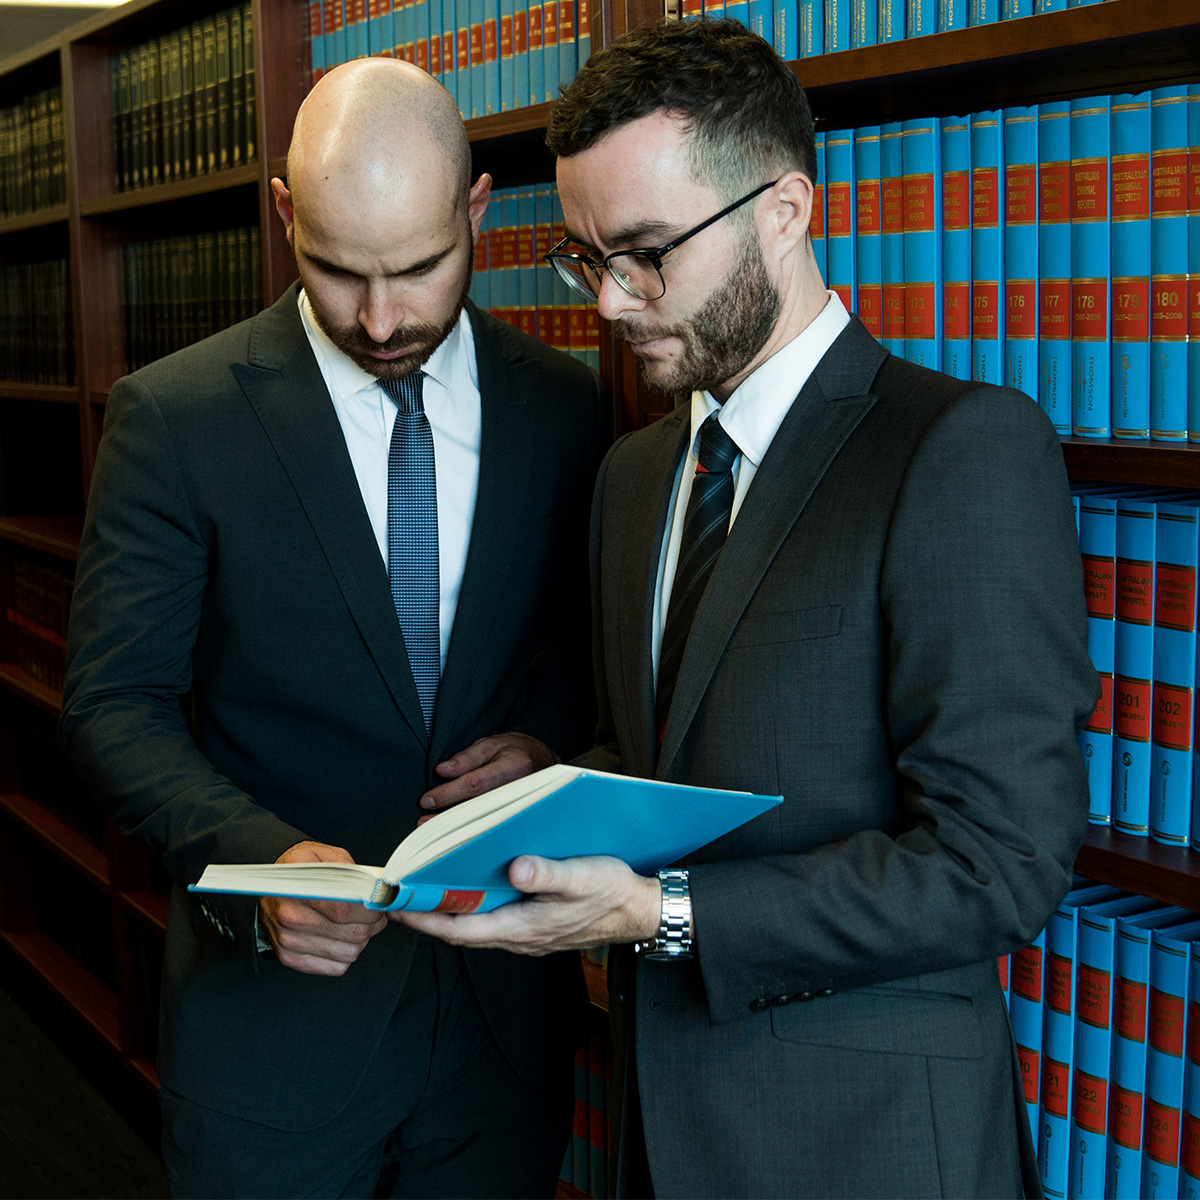 Porter Scudds Criminal Lawyers in Western Australia | Get Advice First